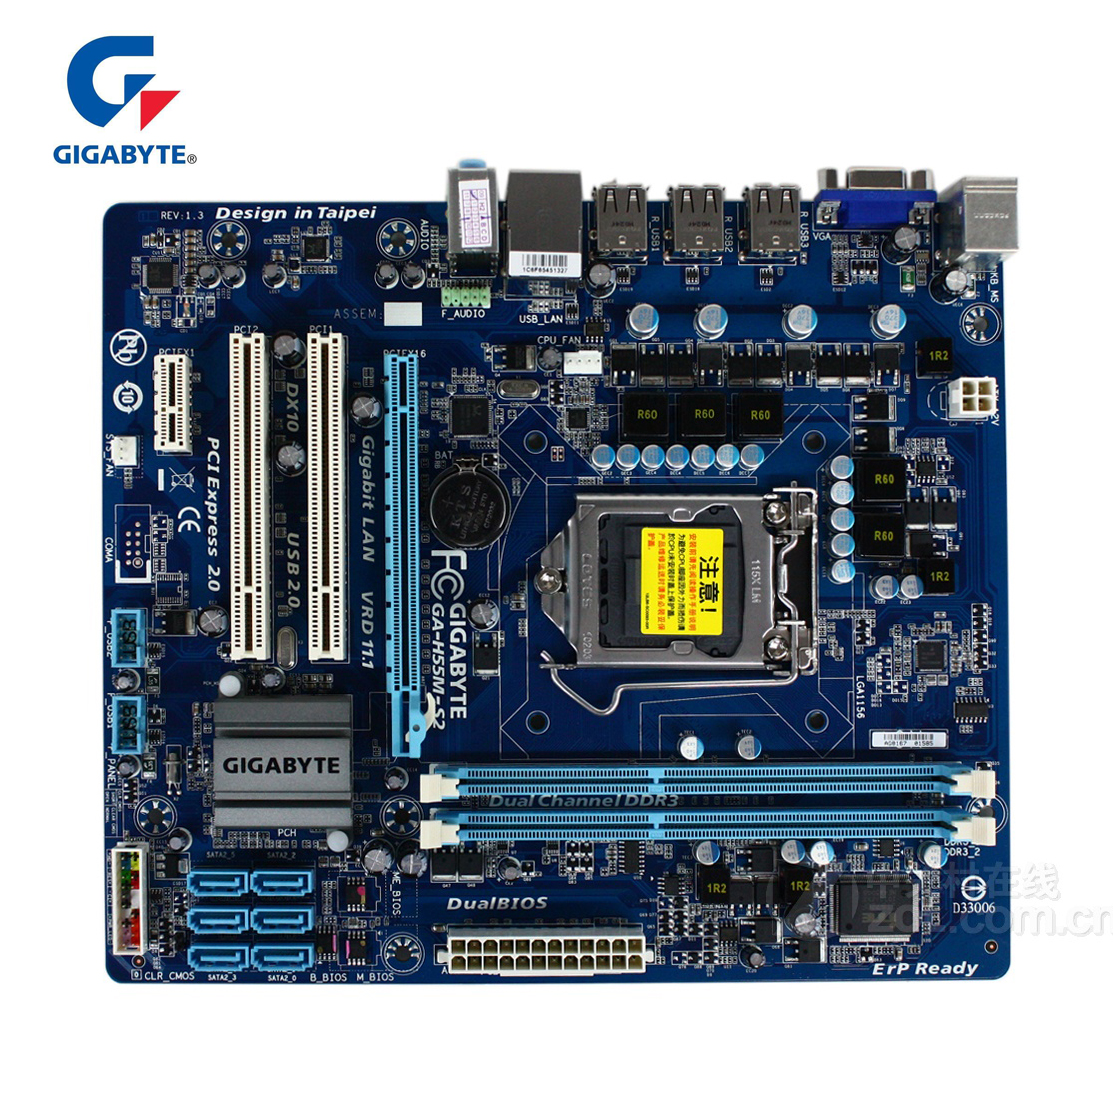 Gigabyte GA-H55M-S2 100% Original Motherboard LGA 1156 DDR3 8GB H55 S2 H55M-S2 Desktop Mainboard Mother board Used i7 i5 i3 цена